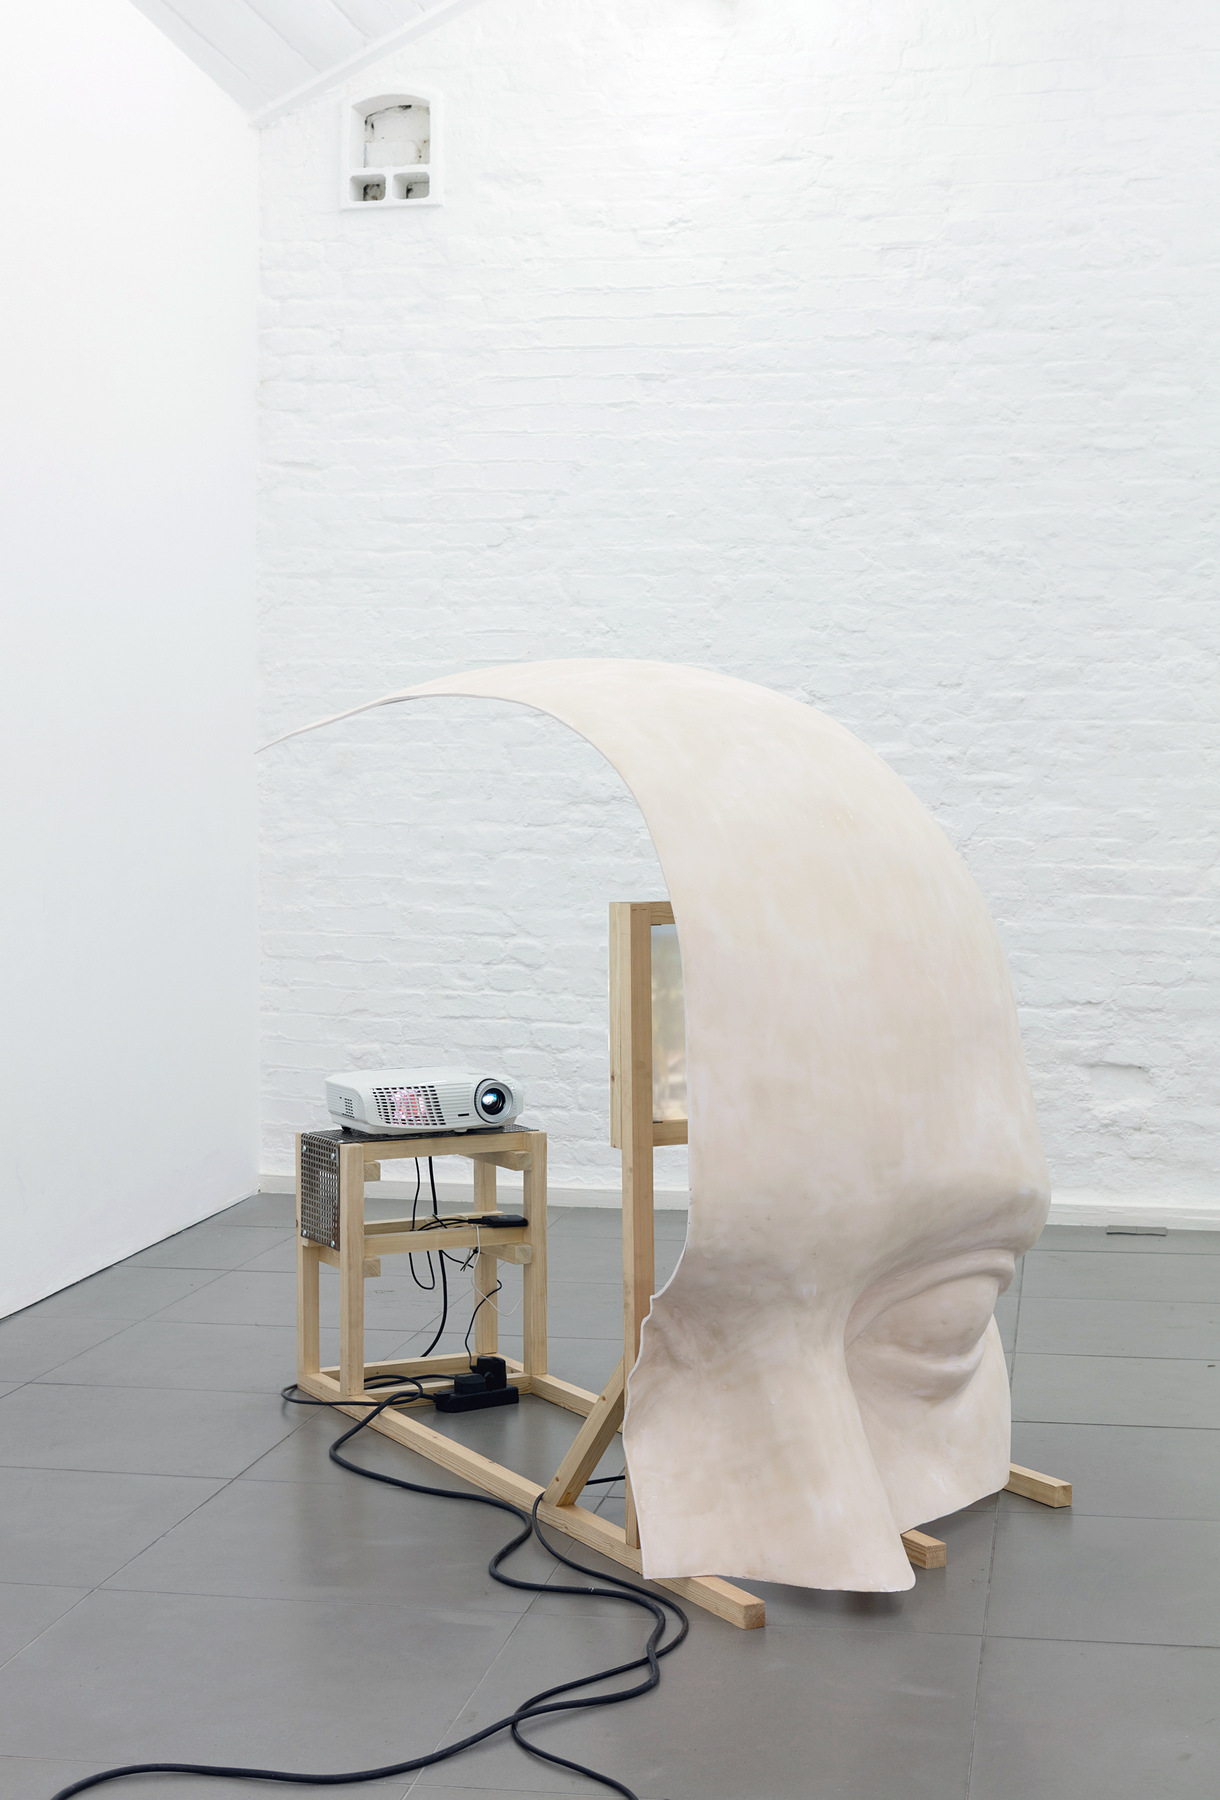 02. Anne de Vries, SUBMISSION 2015, wood, metal, fibreglass resin, audio, video